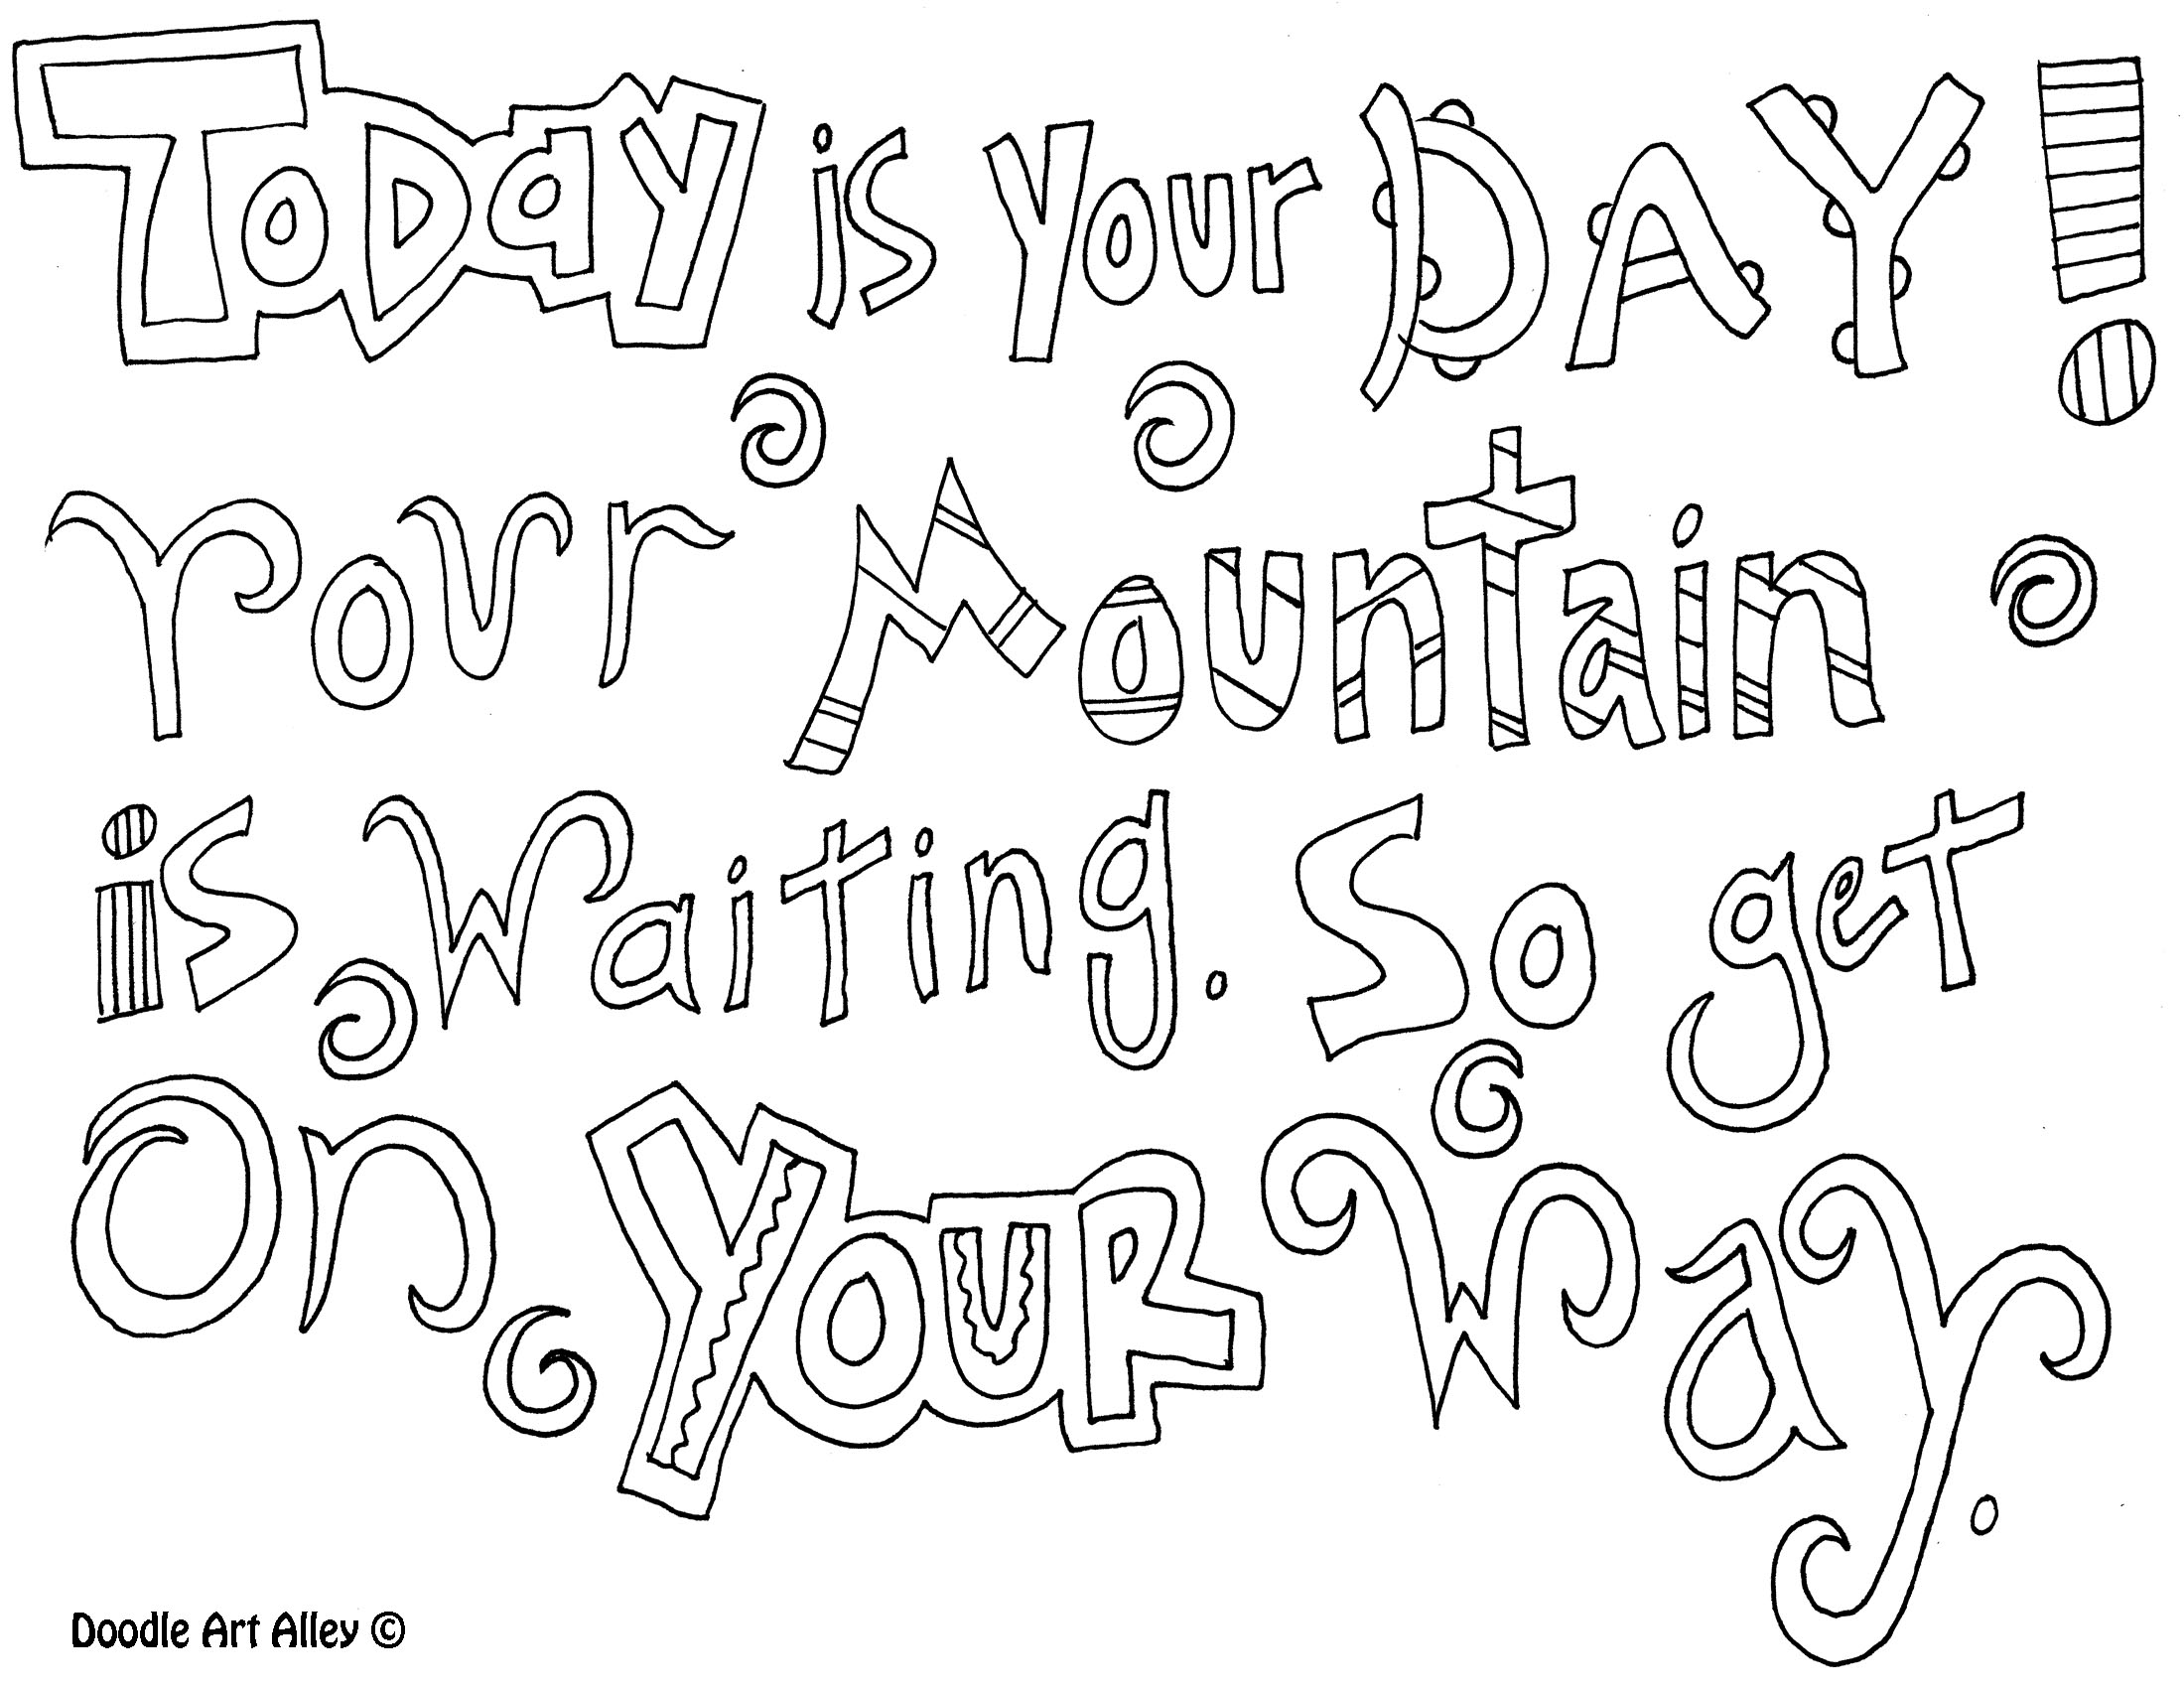 Printable coloring pages with sayings - Printable Coloring Pages With Sayings Printable Coloring Pages With Sayings 9